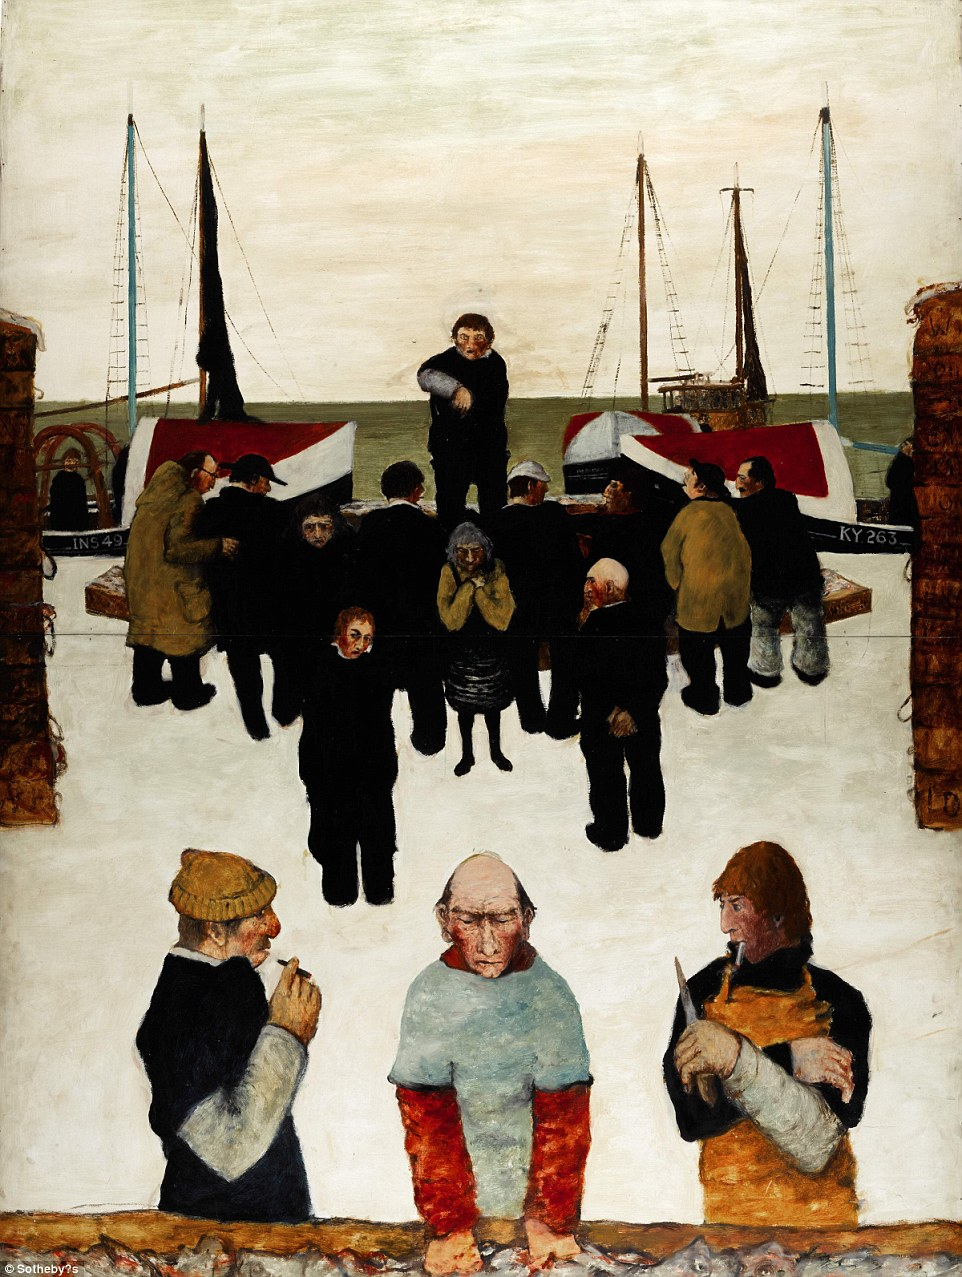 Bowie bought John Bellany's Fishermen in the Snow in 1993 as one of the first pieces he bought at auction. The singer was fascinated by Bellany's upbringing in the traditional fishing community of Port Seton, Scotland. This piece will fetch between £12,000 and £18,000